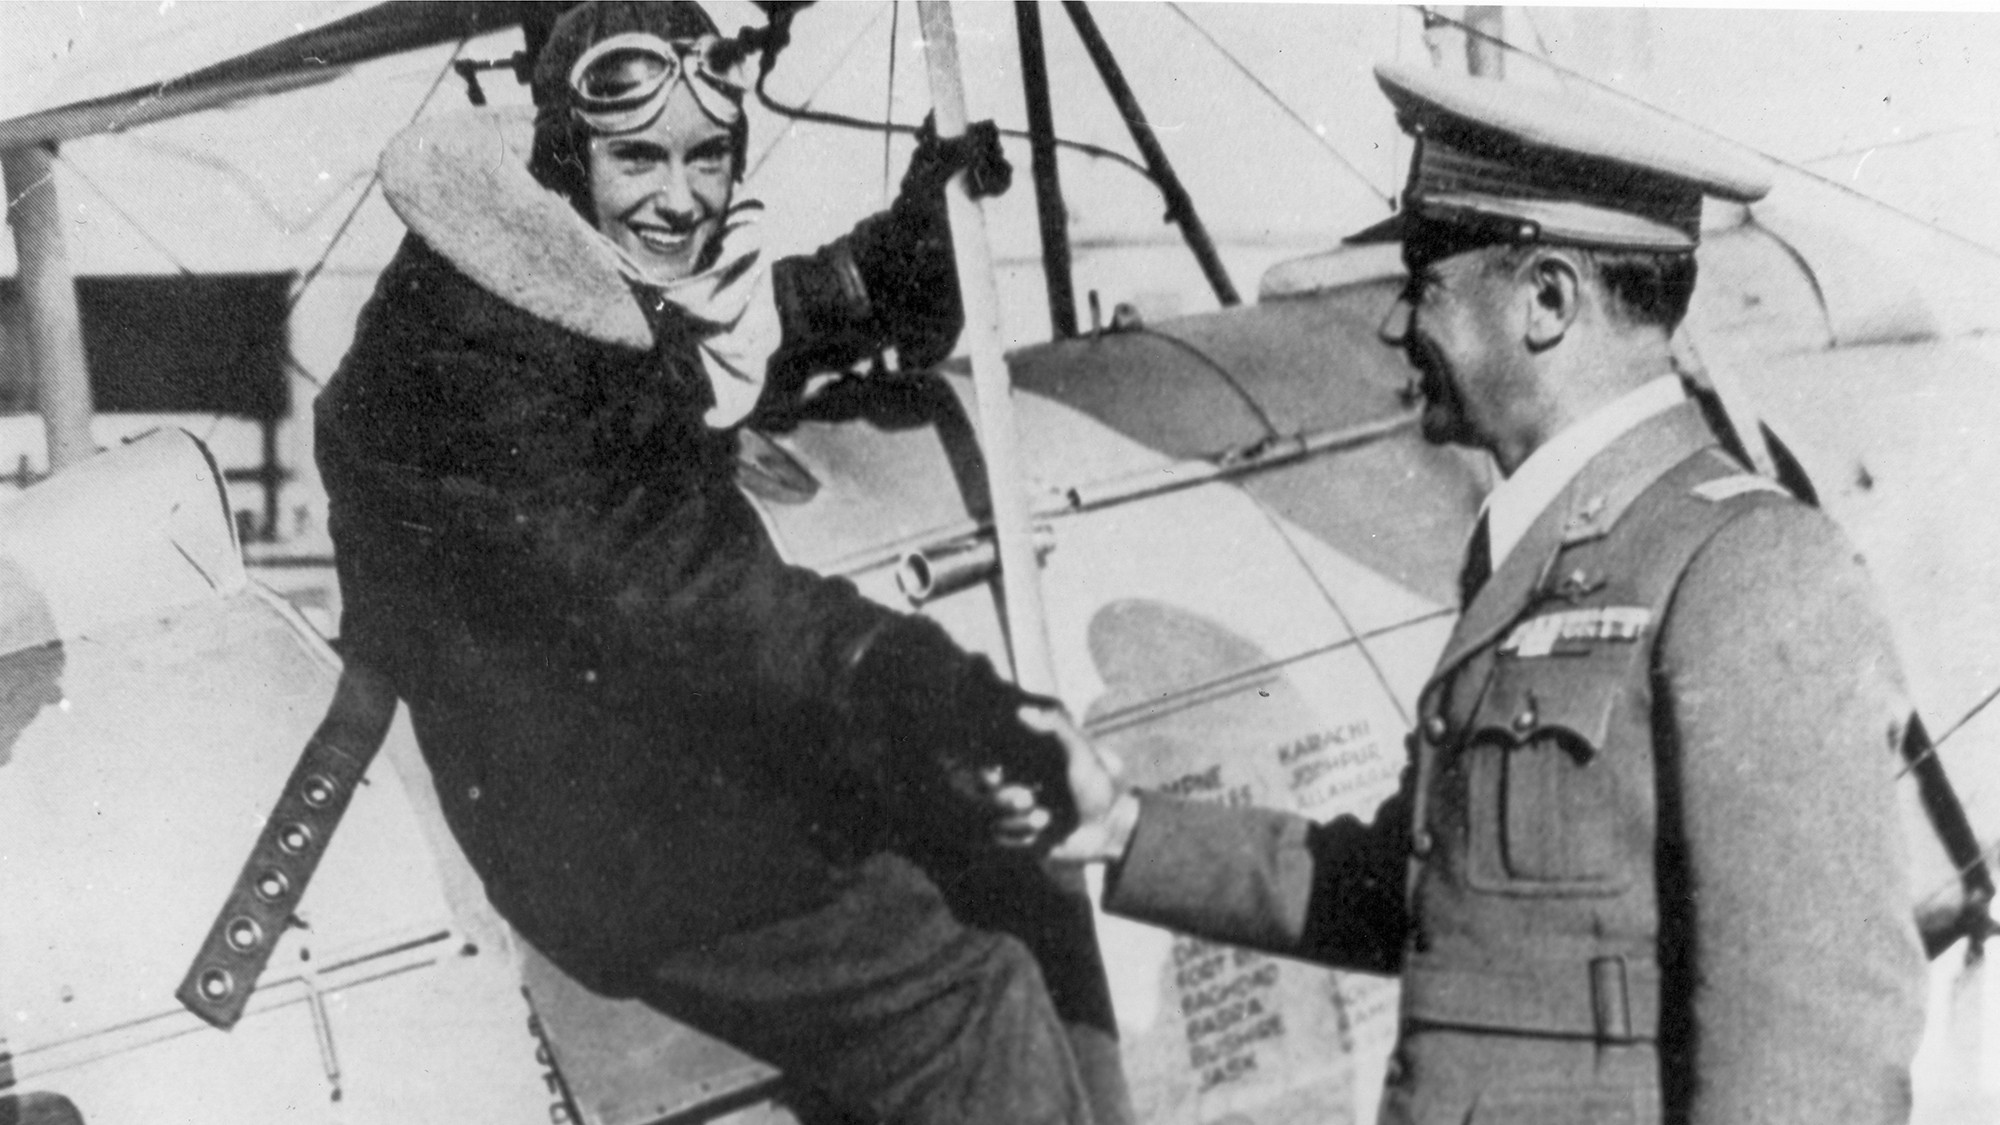 Garbo of the Skies': The Secret, Sexist Story Behind A